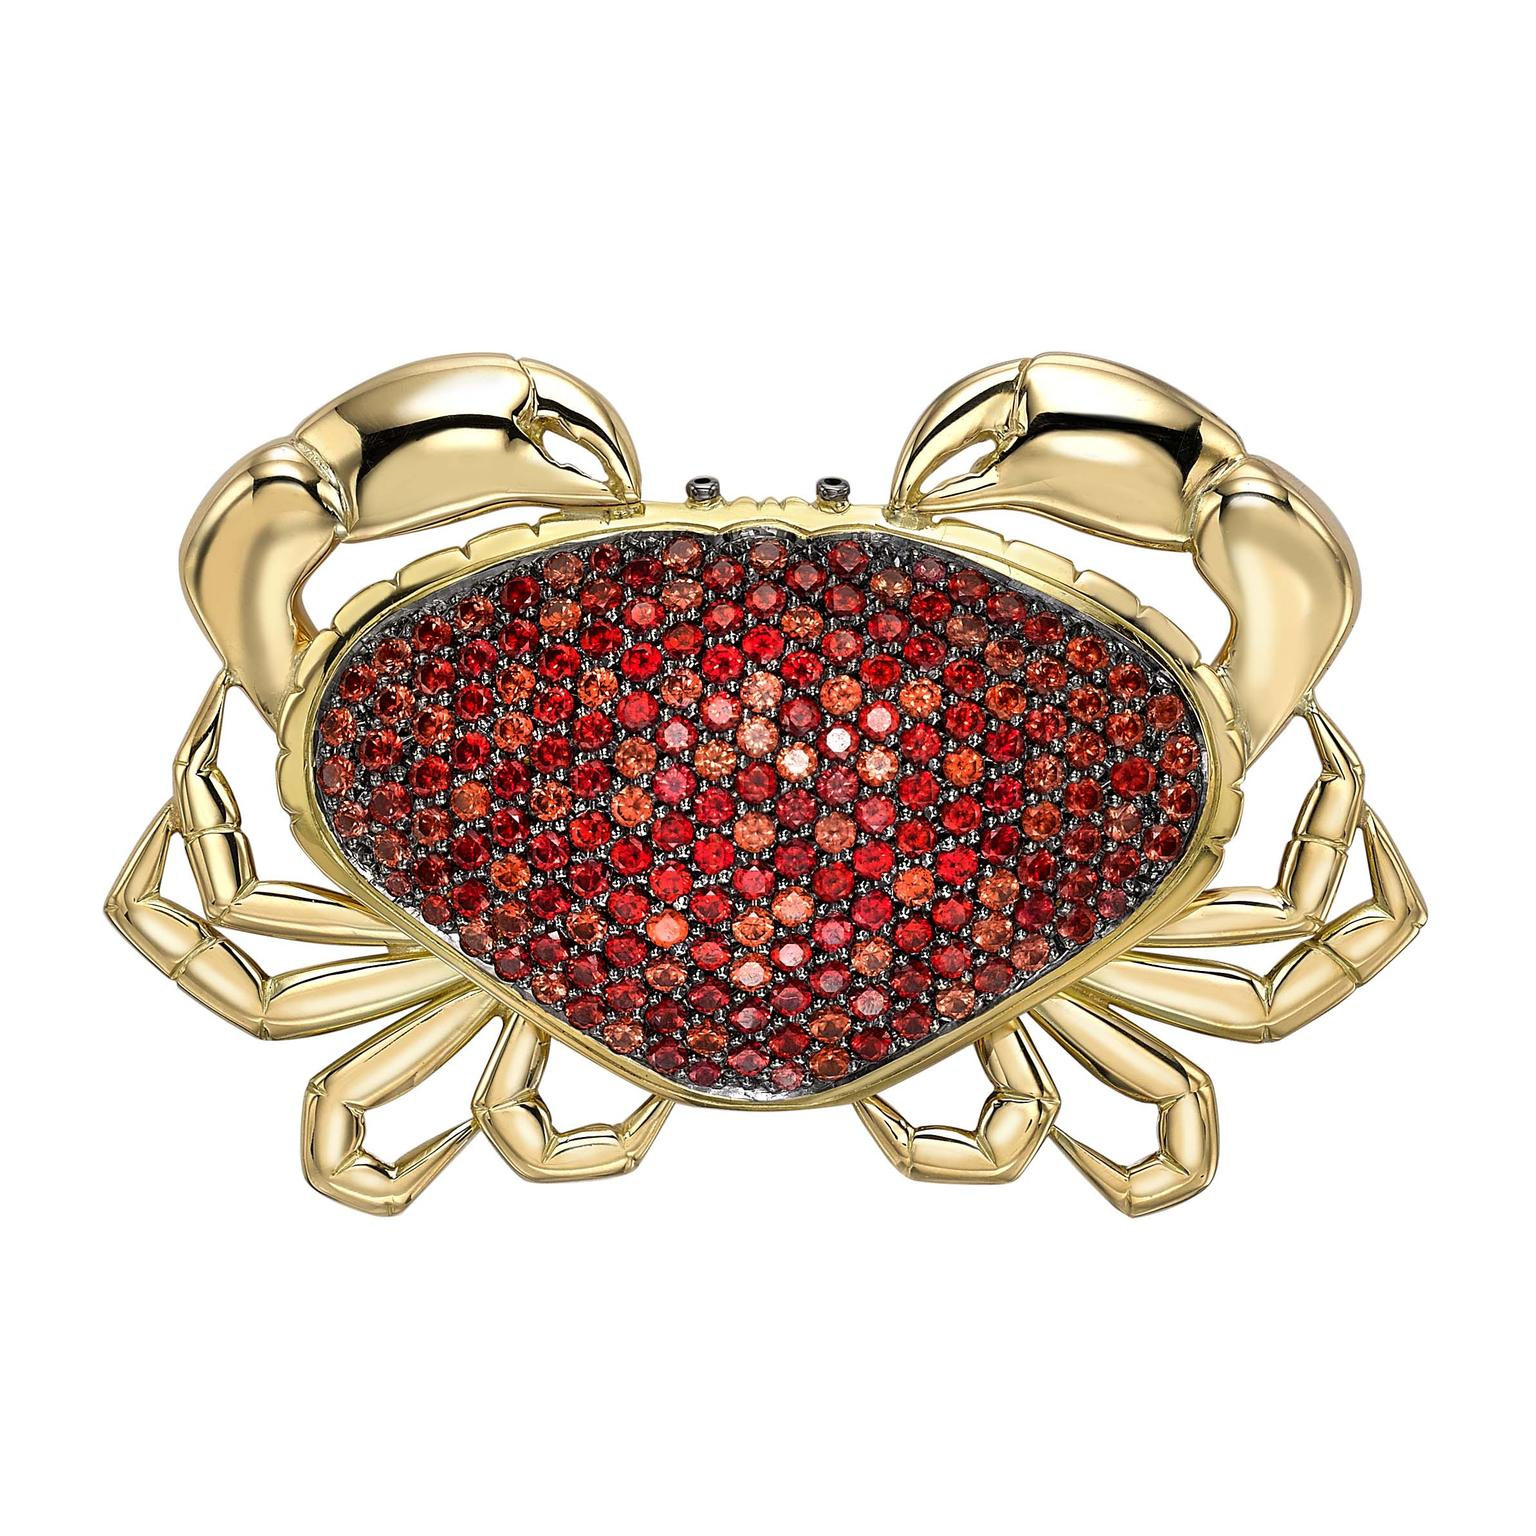 Theo Fennell Crab Brooch